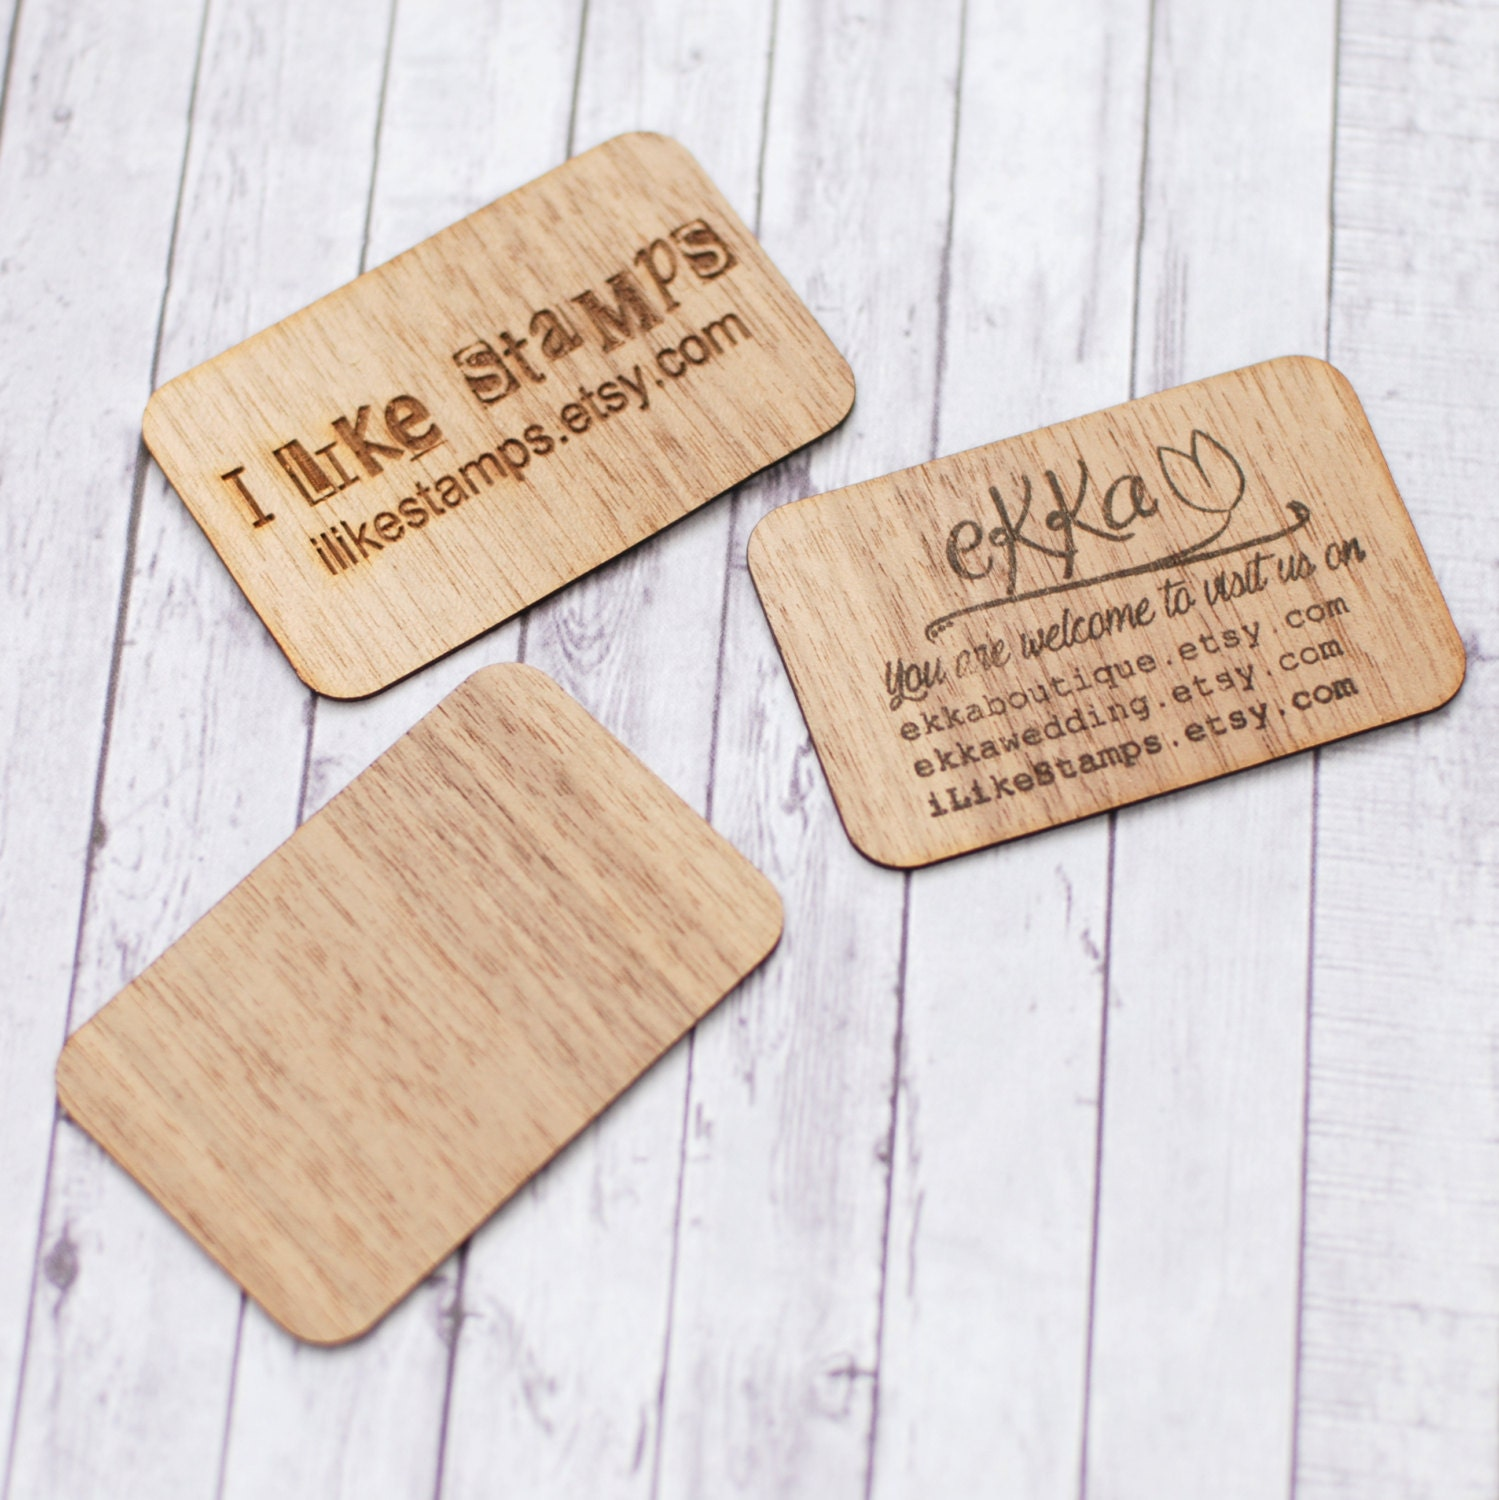 Wood business cards, Wooden business cards, Walnut business cards ...